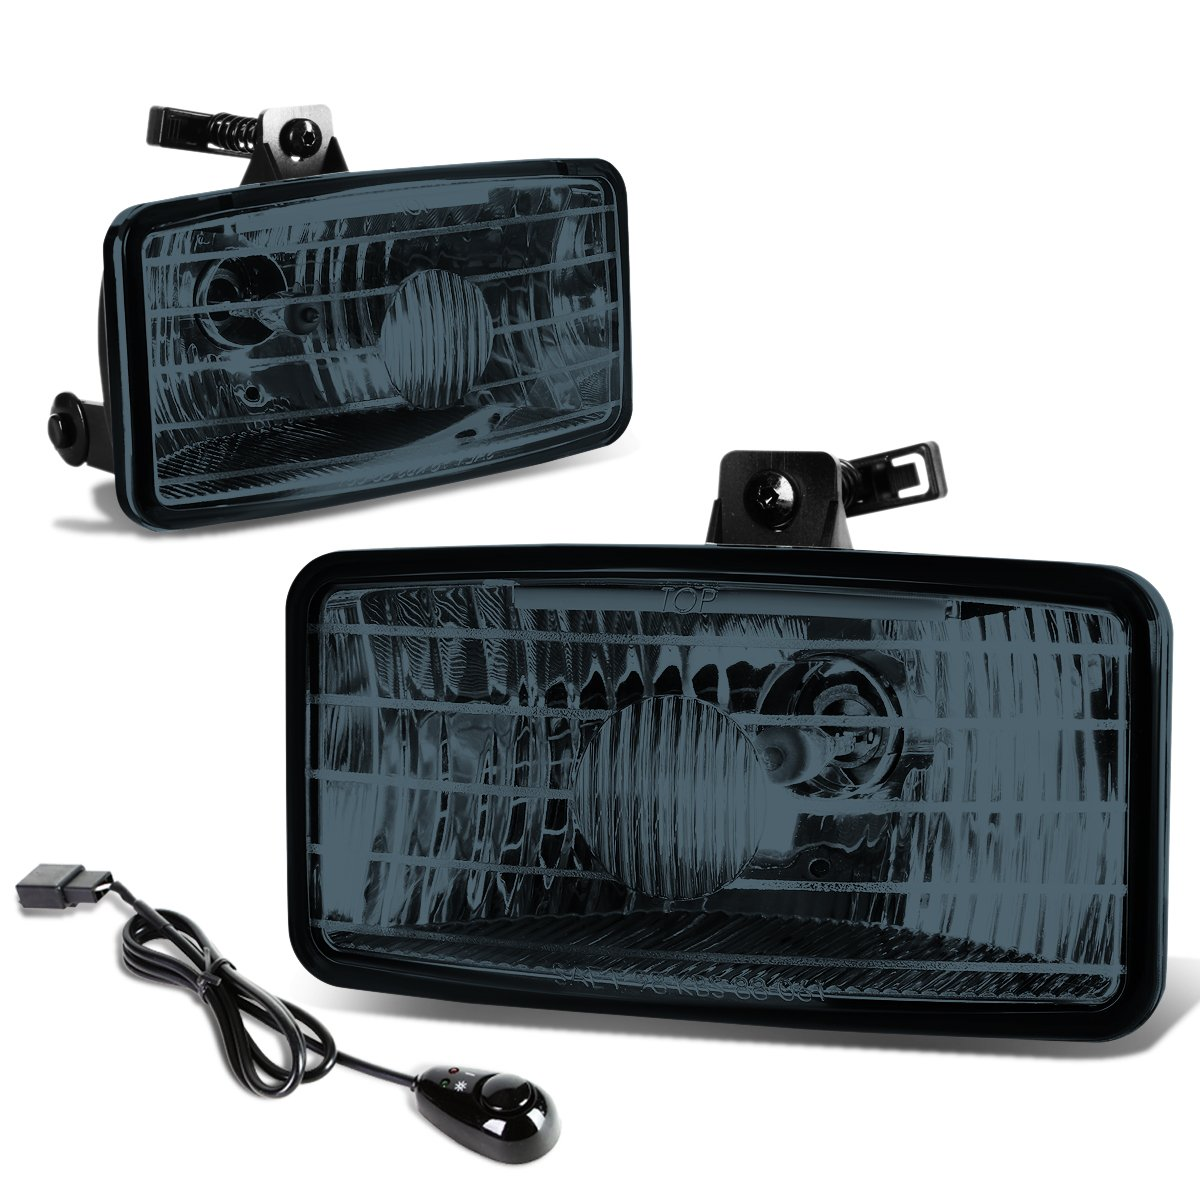 For Chevy S10 Xtreme Gmt325 Pair Of Bumper Driving Fog 2001 Silverado Lamp Wiring Harness Lights Kit Switch Smoked Lens Automotive